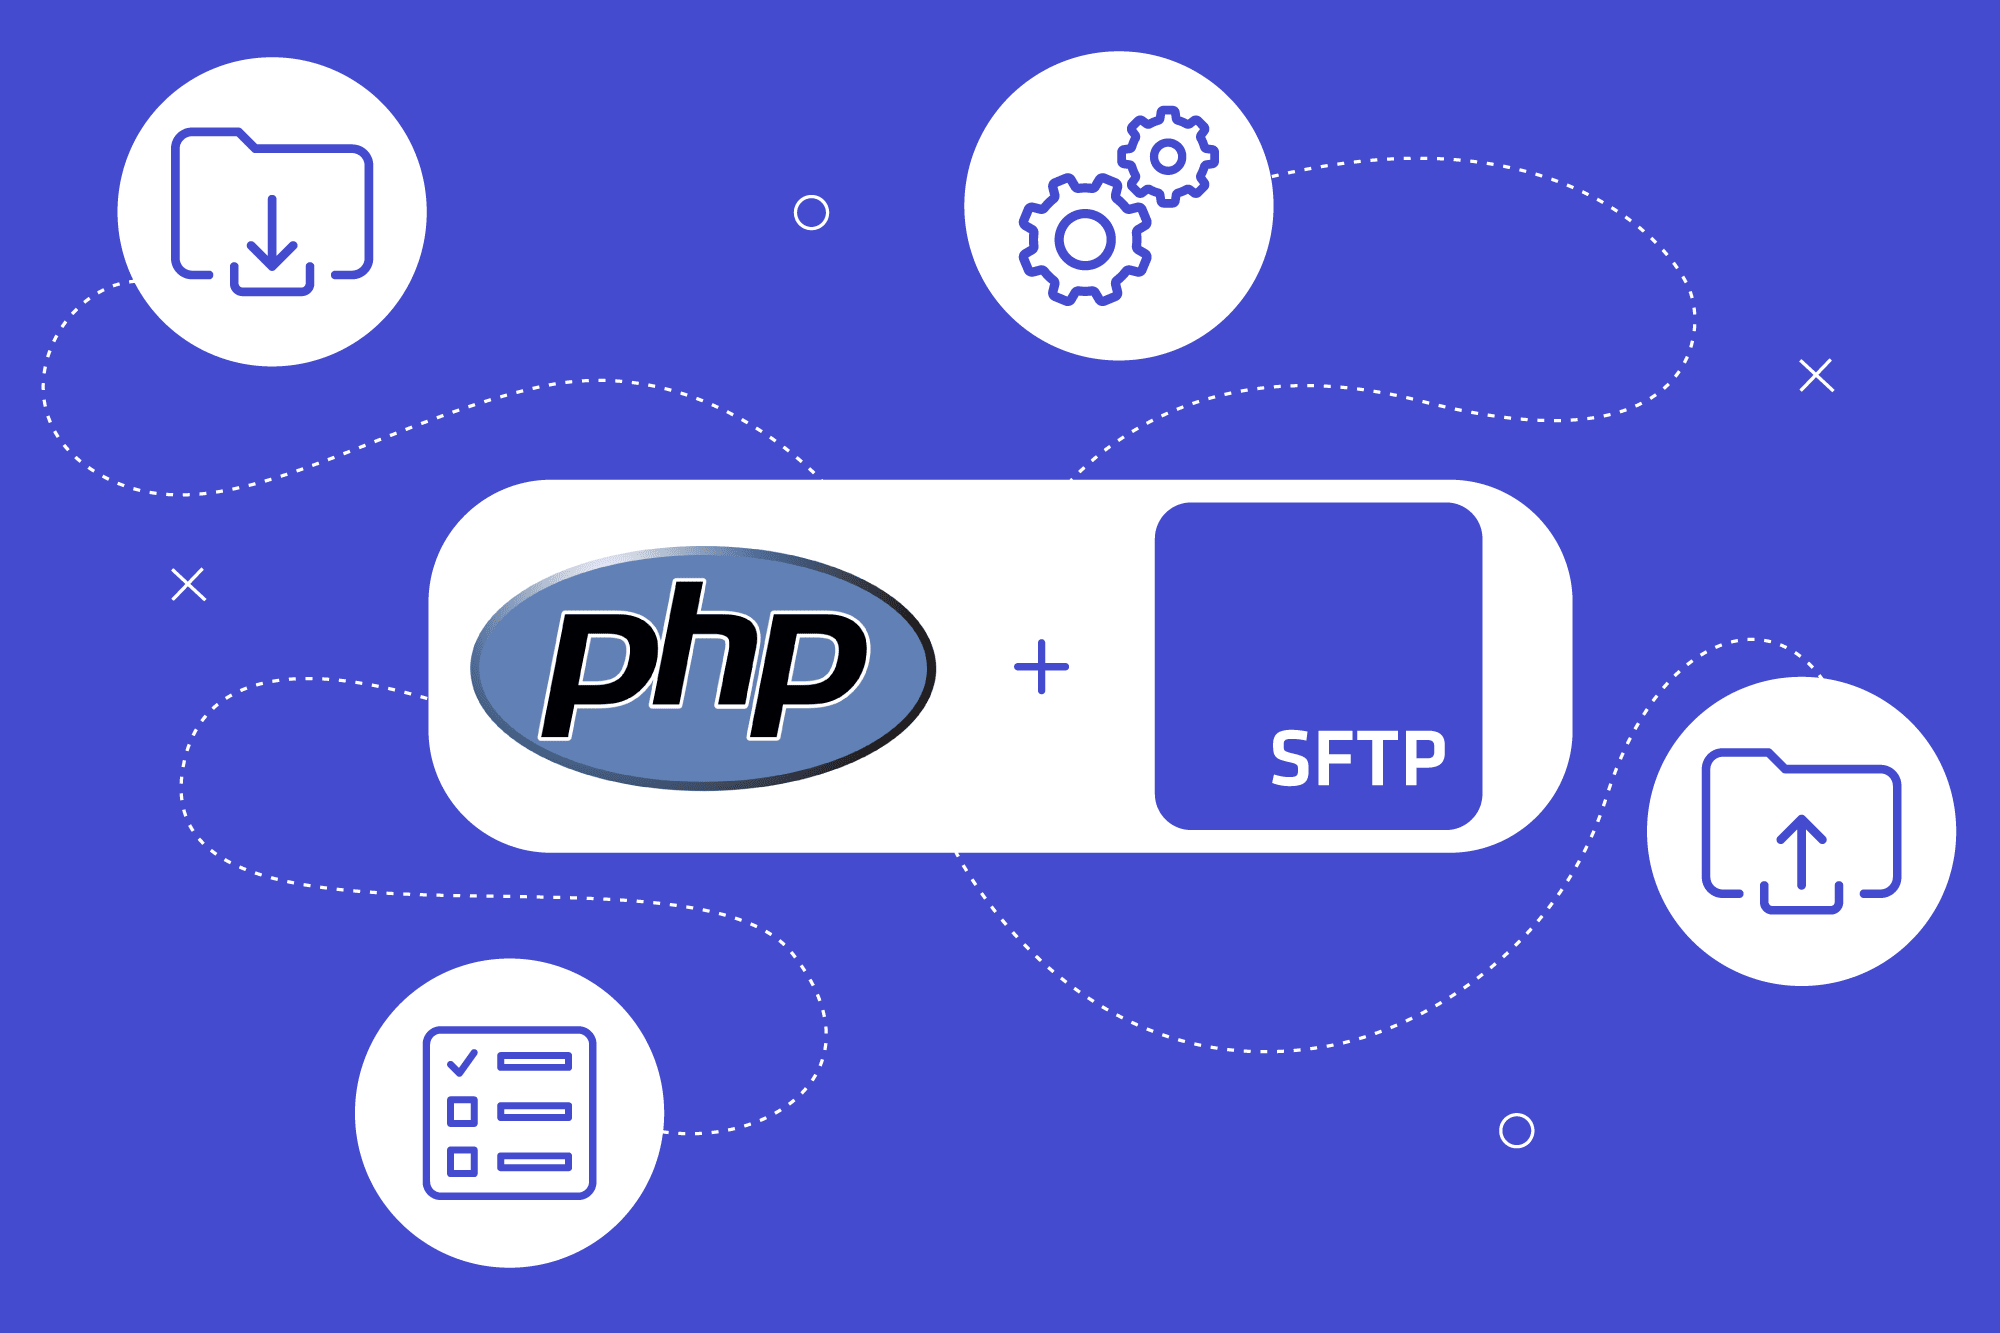 How to connect to SFTP in PHP